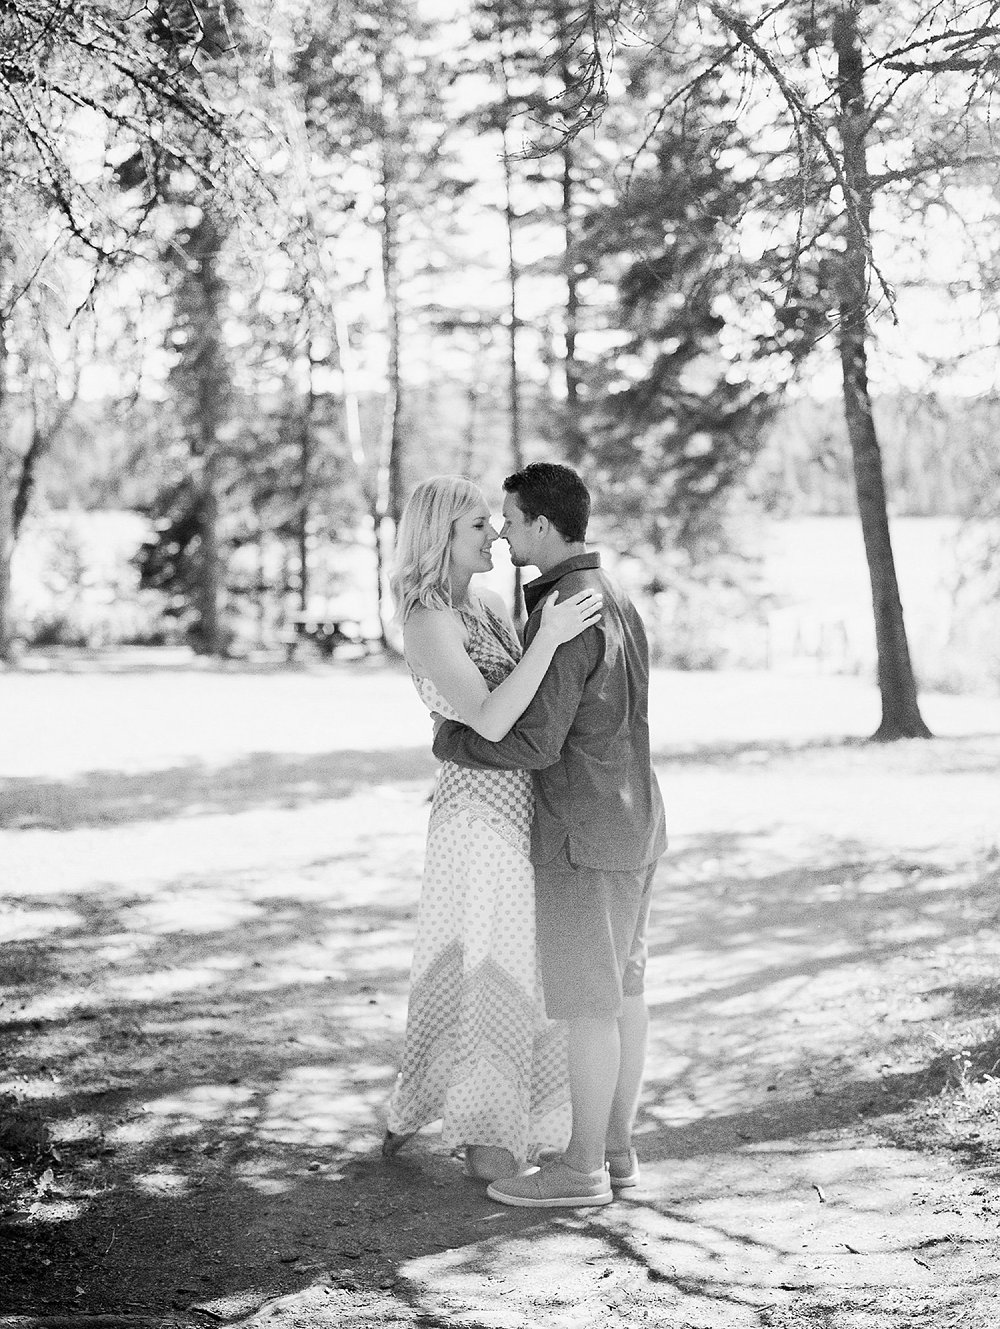 Soft Romantic Anniversary Session | Film Wedding Photographer | Vancouver Wedding Photographer | Lakeside Anniversary Session | Keila Marie Photography